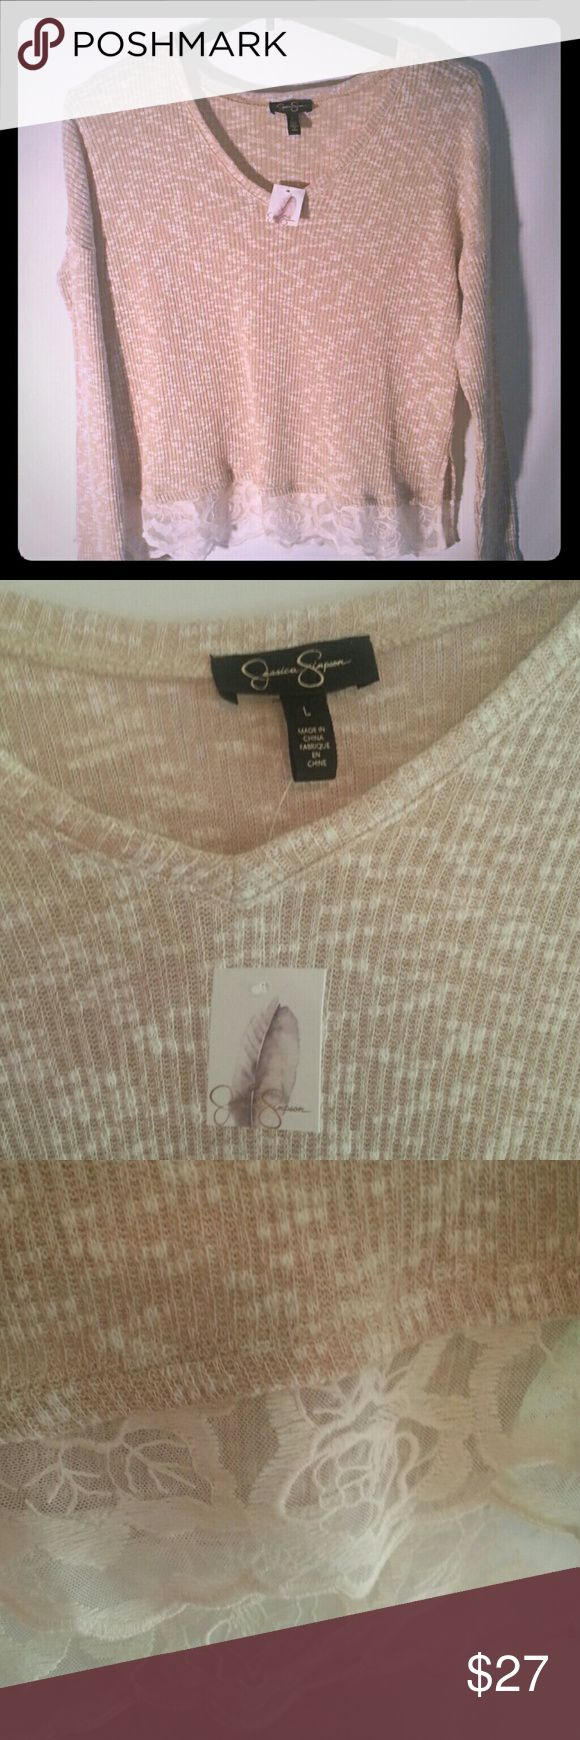 Jessica simpson shirt Jessica simpson long sleeve light sweater with tags.  Lacy bottom trim. Extremely comfortable . Would look great for comfortable   work clothes. Jessica Simpson Sweaters V-Necks